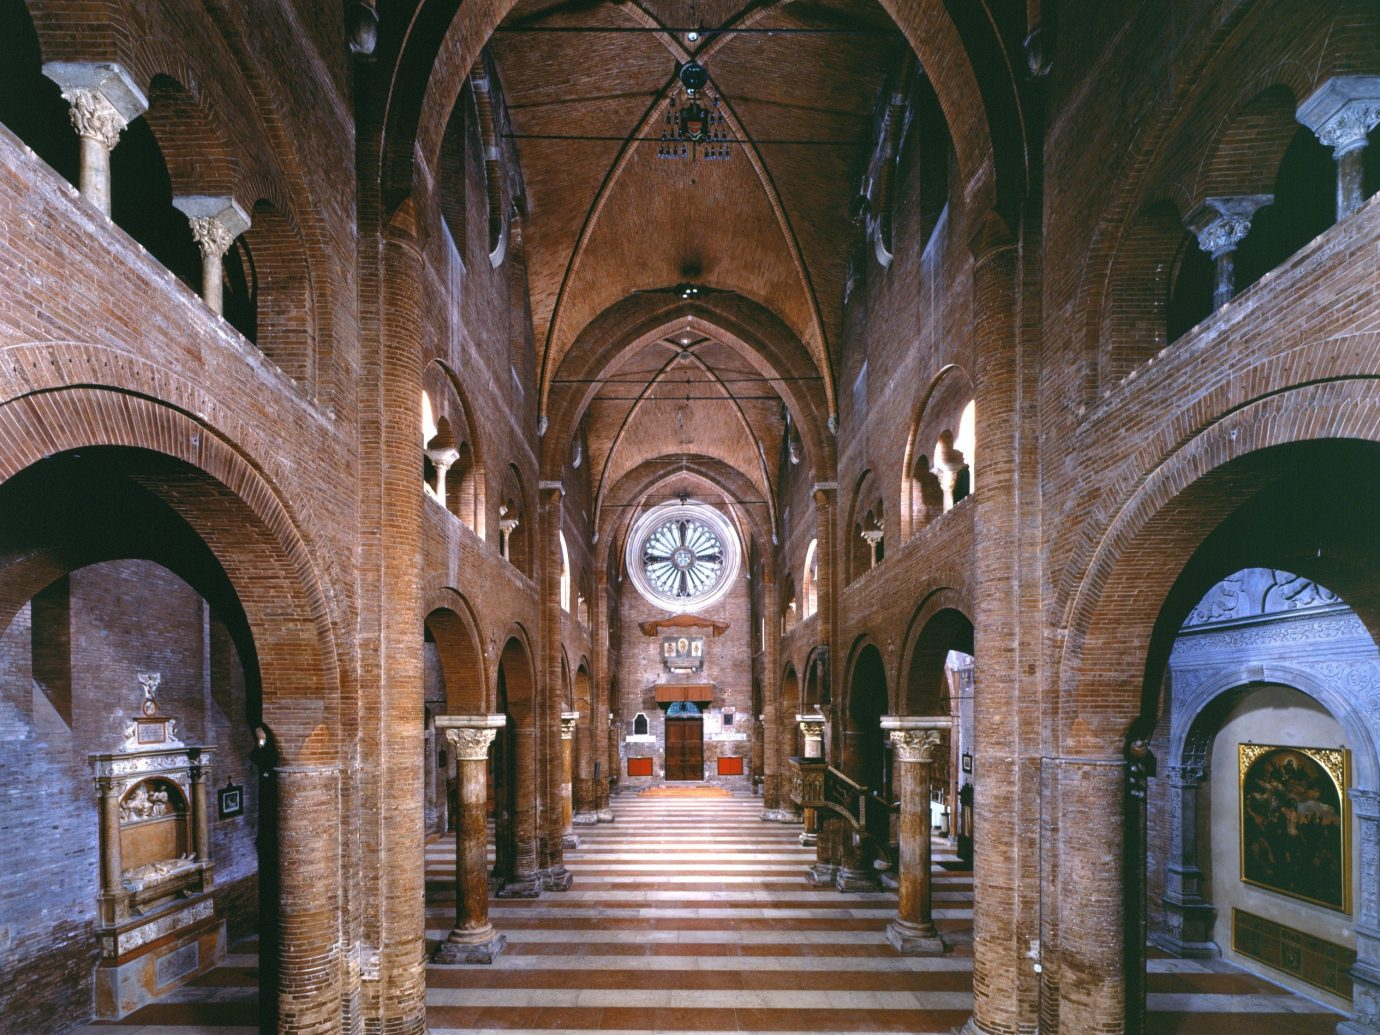 europe Italy Off-the-beaten Path Trip Ideas building medieval architecture outdoor arch place of worship byzantine architecture arcade basilica Church historic site cathedral chapel symmetry column gothic architecture vault abbey window stone court walkway colonnade